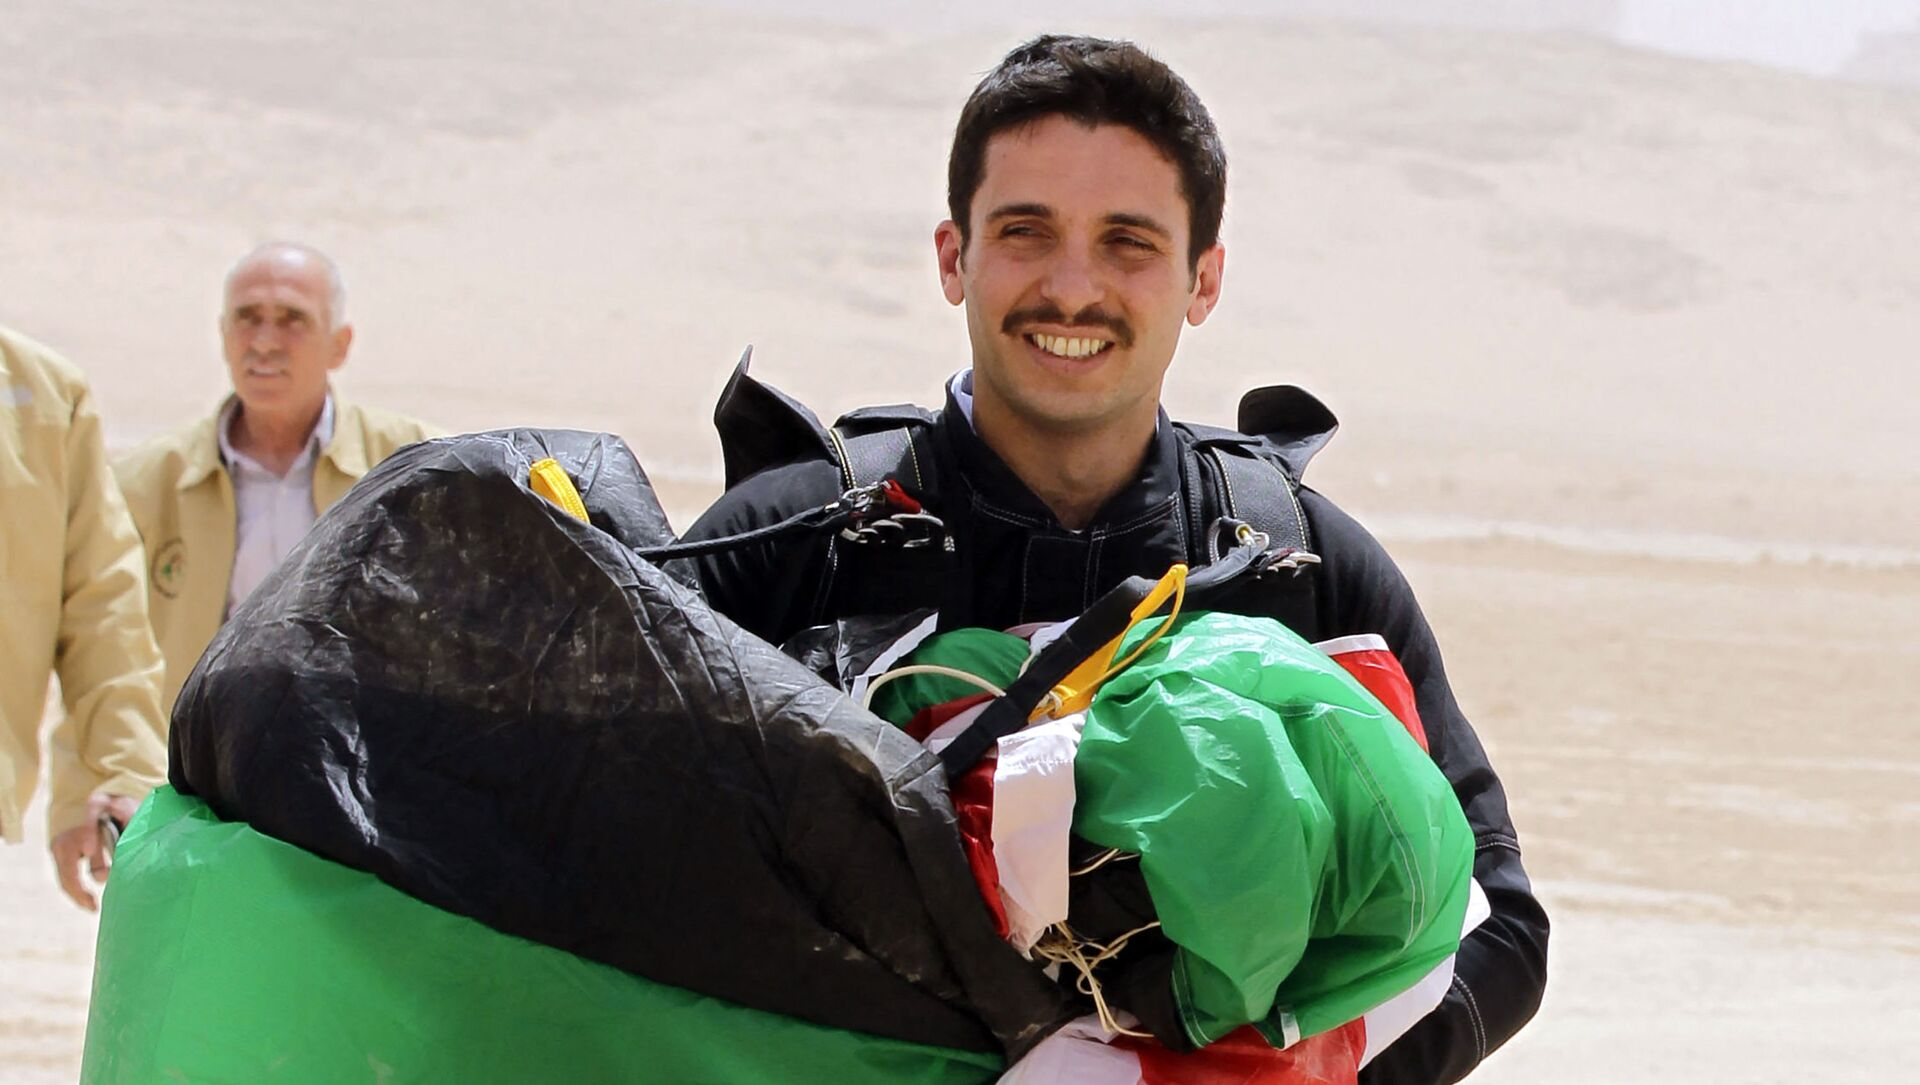 In this file photo taken on April 17, 2012 shows Jordanian Prince Hamzah bin al-Hussein, president of the Royal Aero Sports Club of Jordan, carries a parachute during a media event to announce the launch of Skydive Jordan, in the Wadi Rum desert. - A top former Jordanian royal aide was among several suspects arrested on April 3, 2021, as the army cautioned Prince Hamzah bin Hussein, the half-brother of King Abdullah II against damaging the country's security. - Sputnik Italia, 1920, 05.04.2021